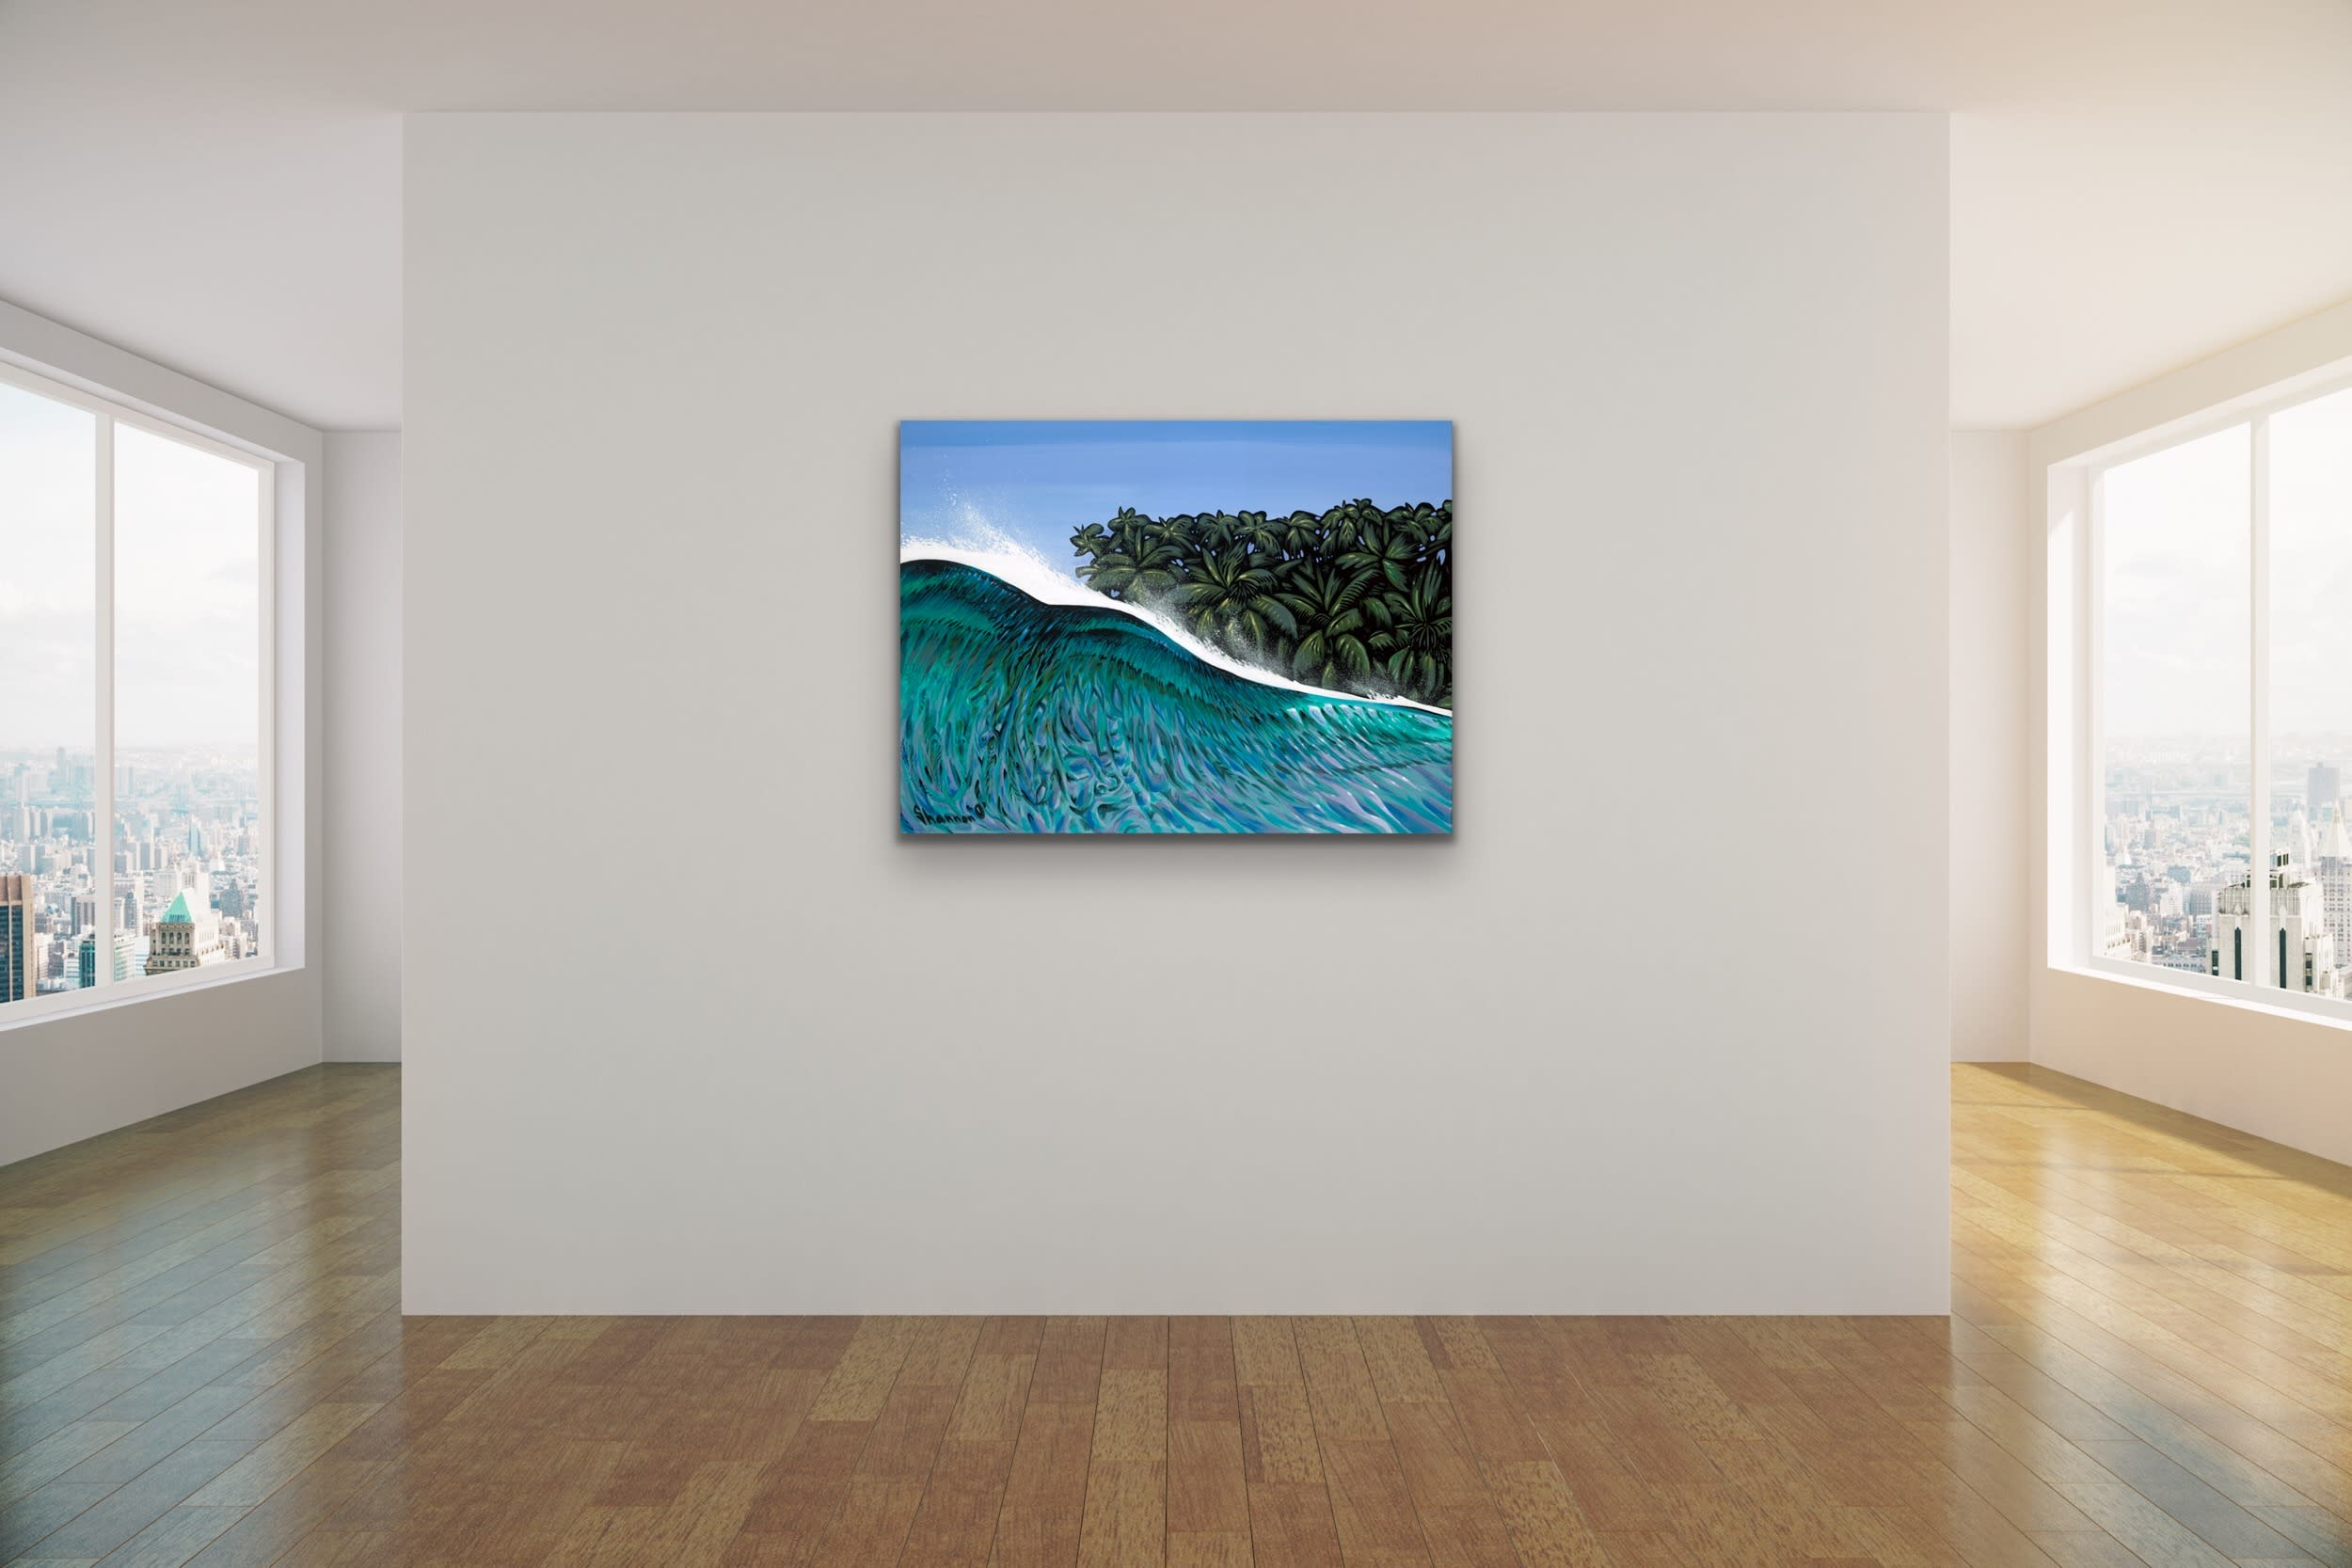 <div class='title'>           Shannon Oconnell Paintings Mock Ups Evo Art Maui Lahain Front Street Gallery Collect Popular Colorful Ocean Flowers Scenery Waves 21         </div>